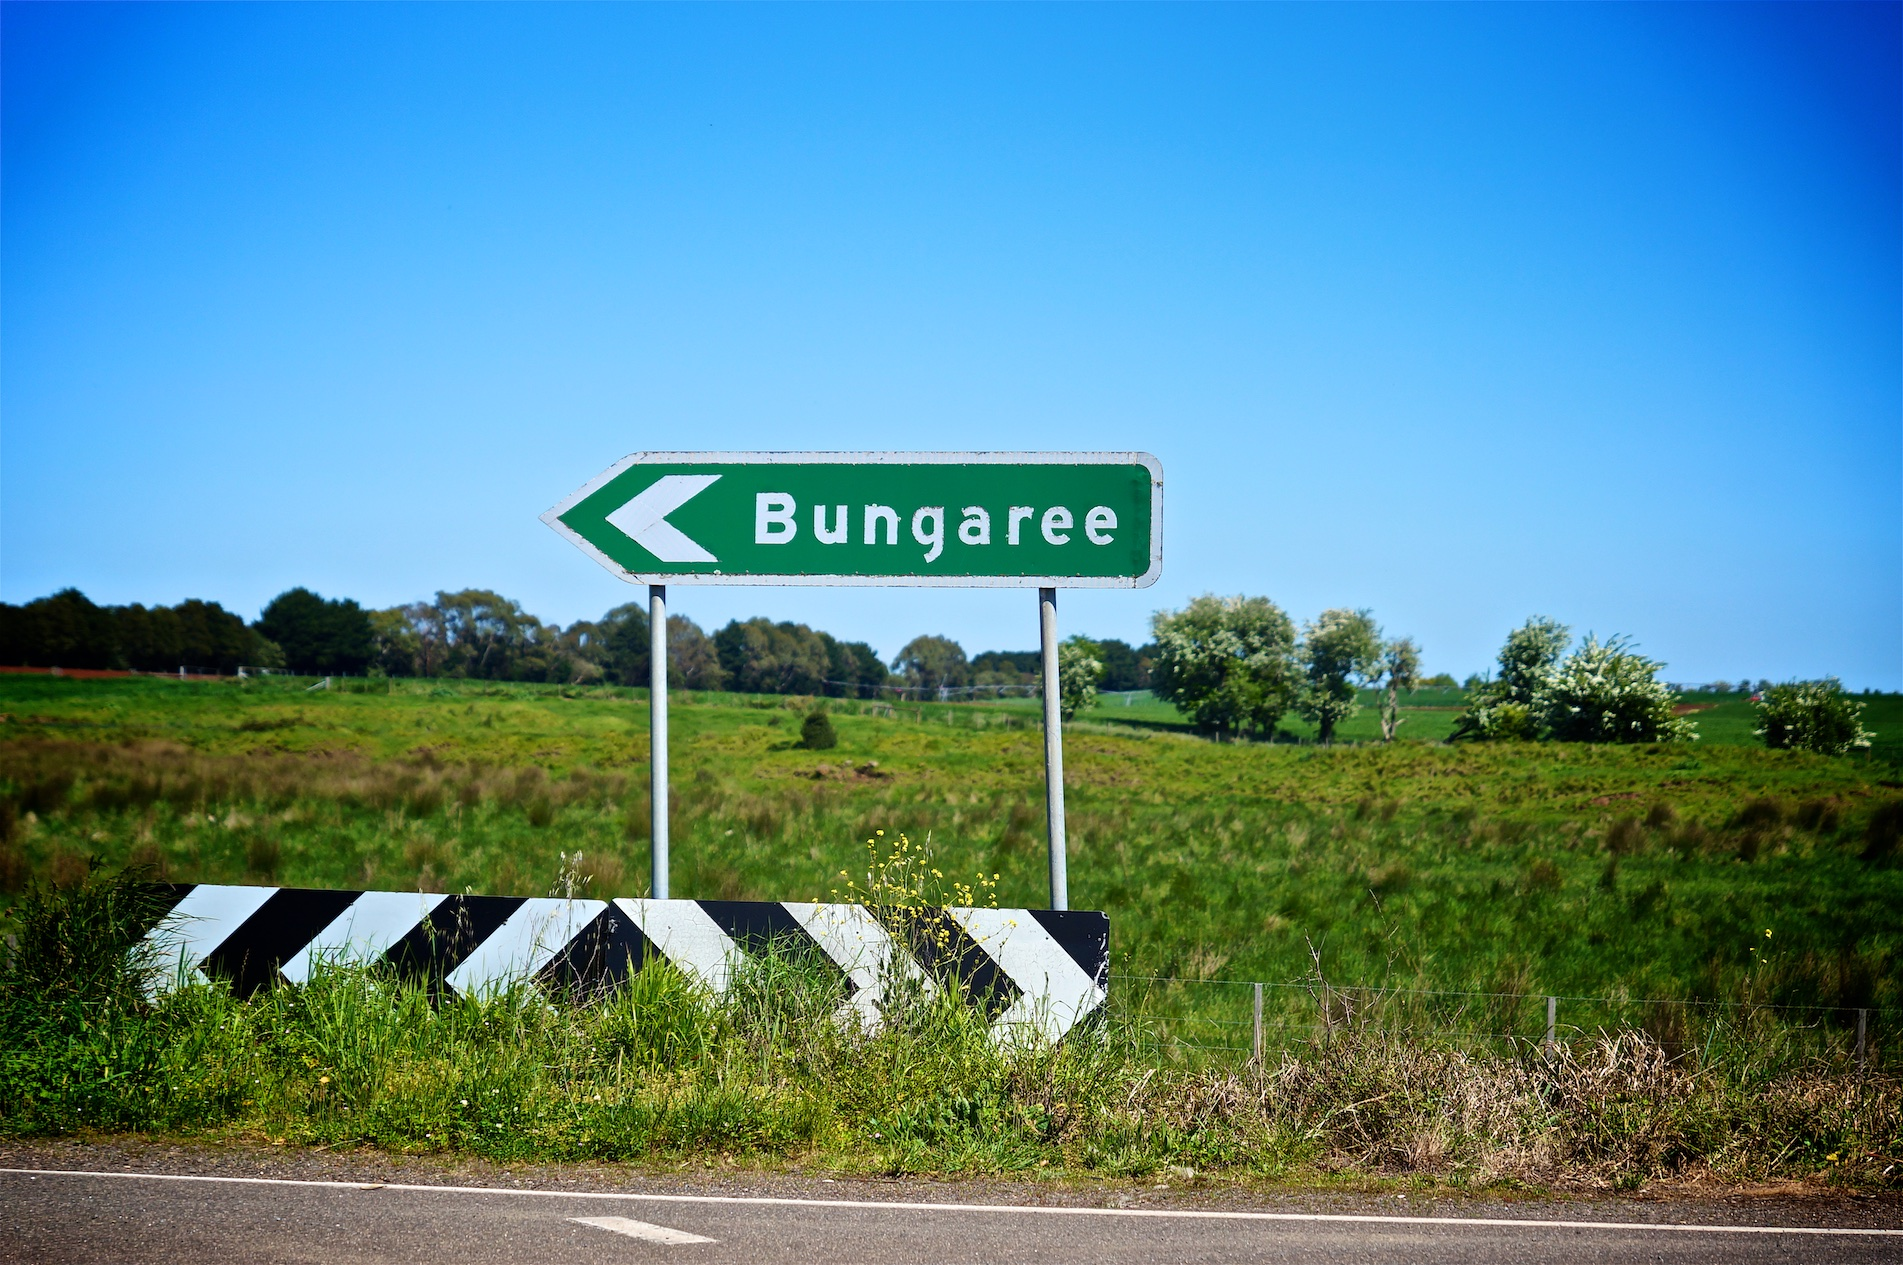 Bungaree – the place to be!